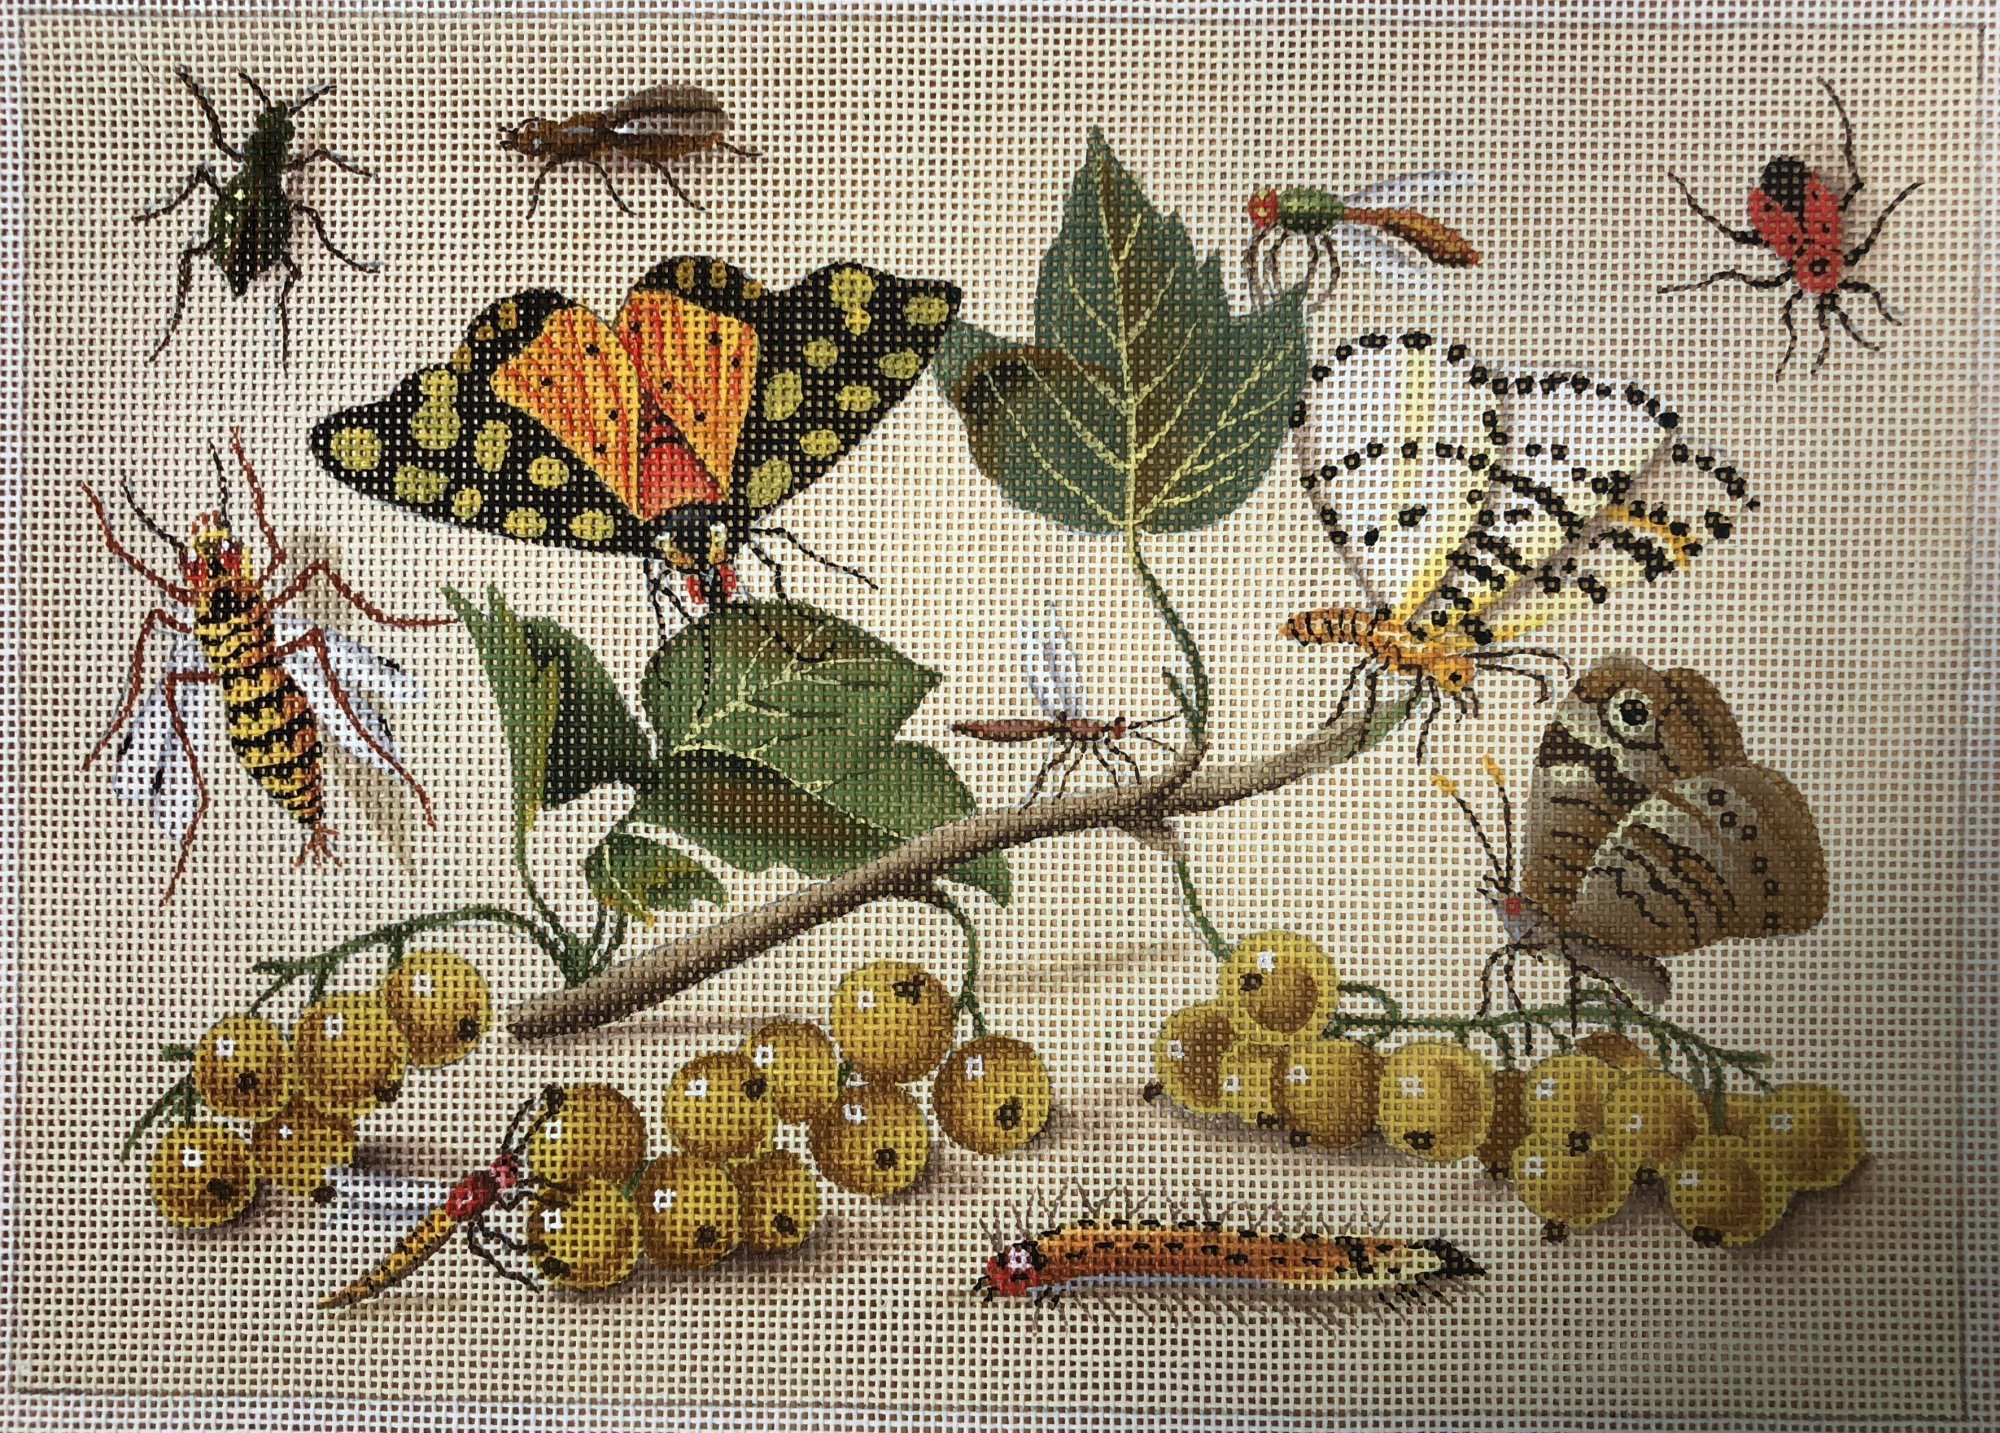 currants & butterflys